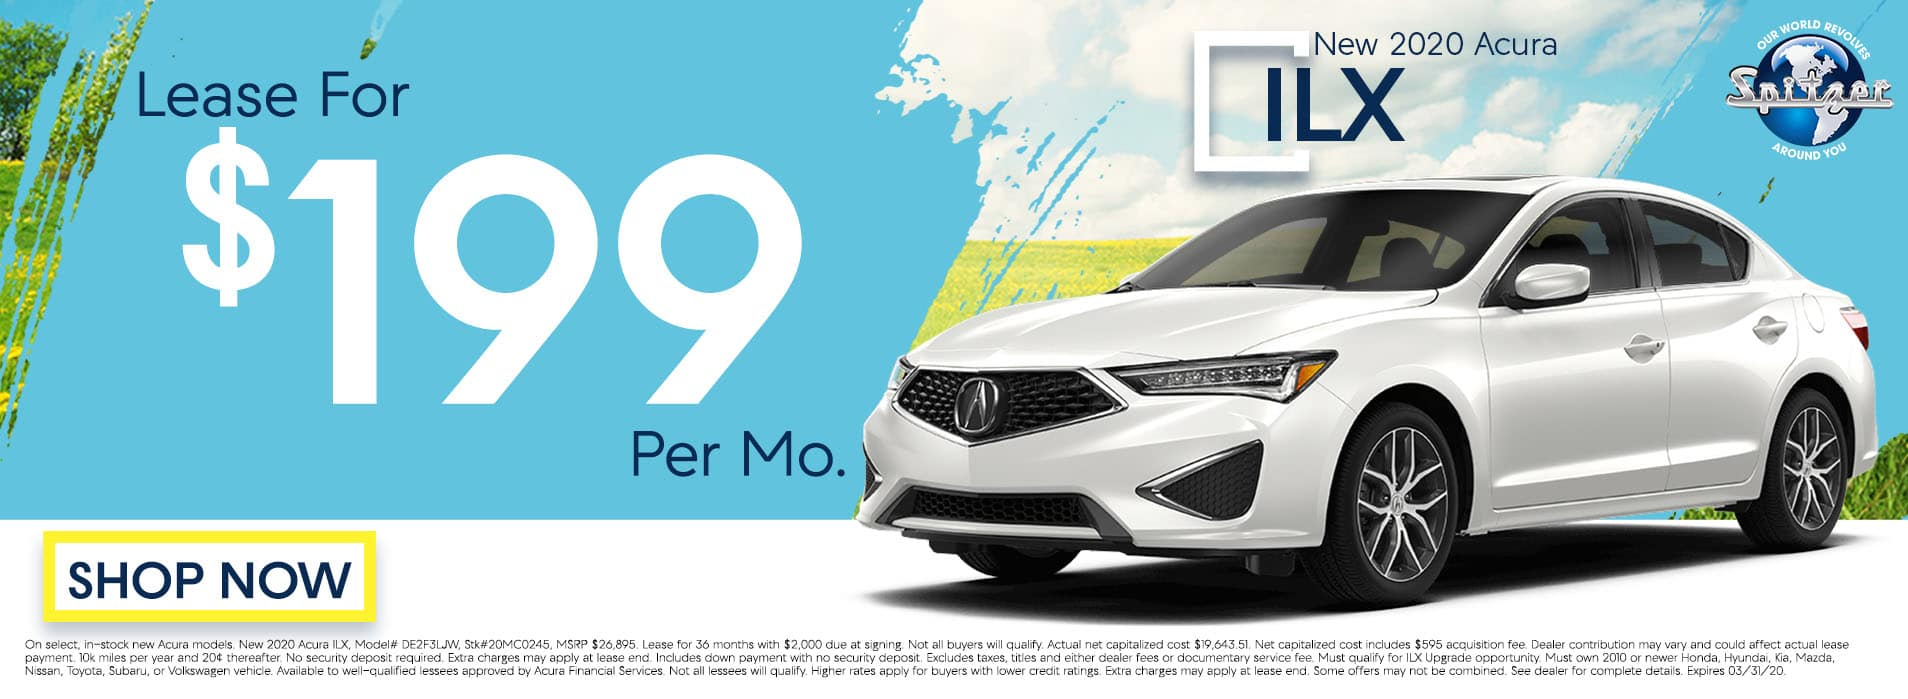 ILX | Lease for $199